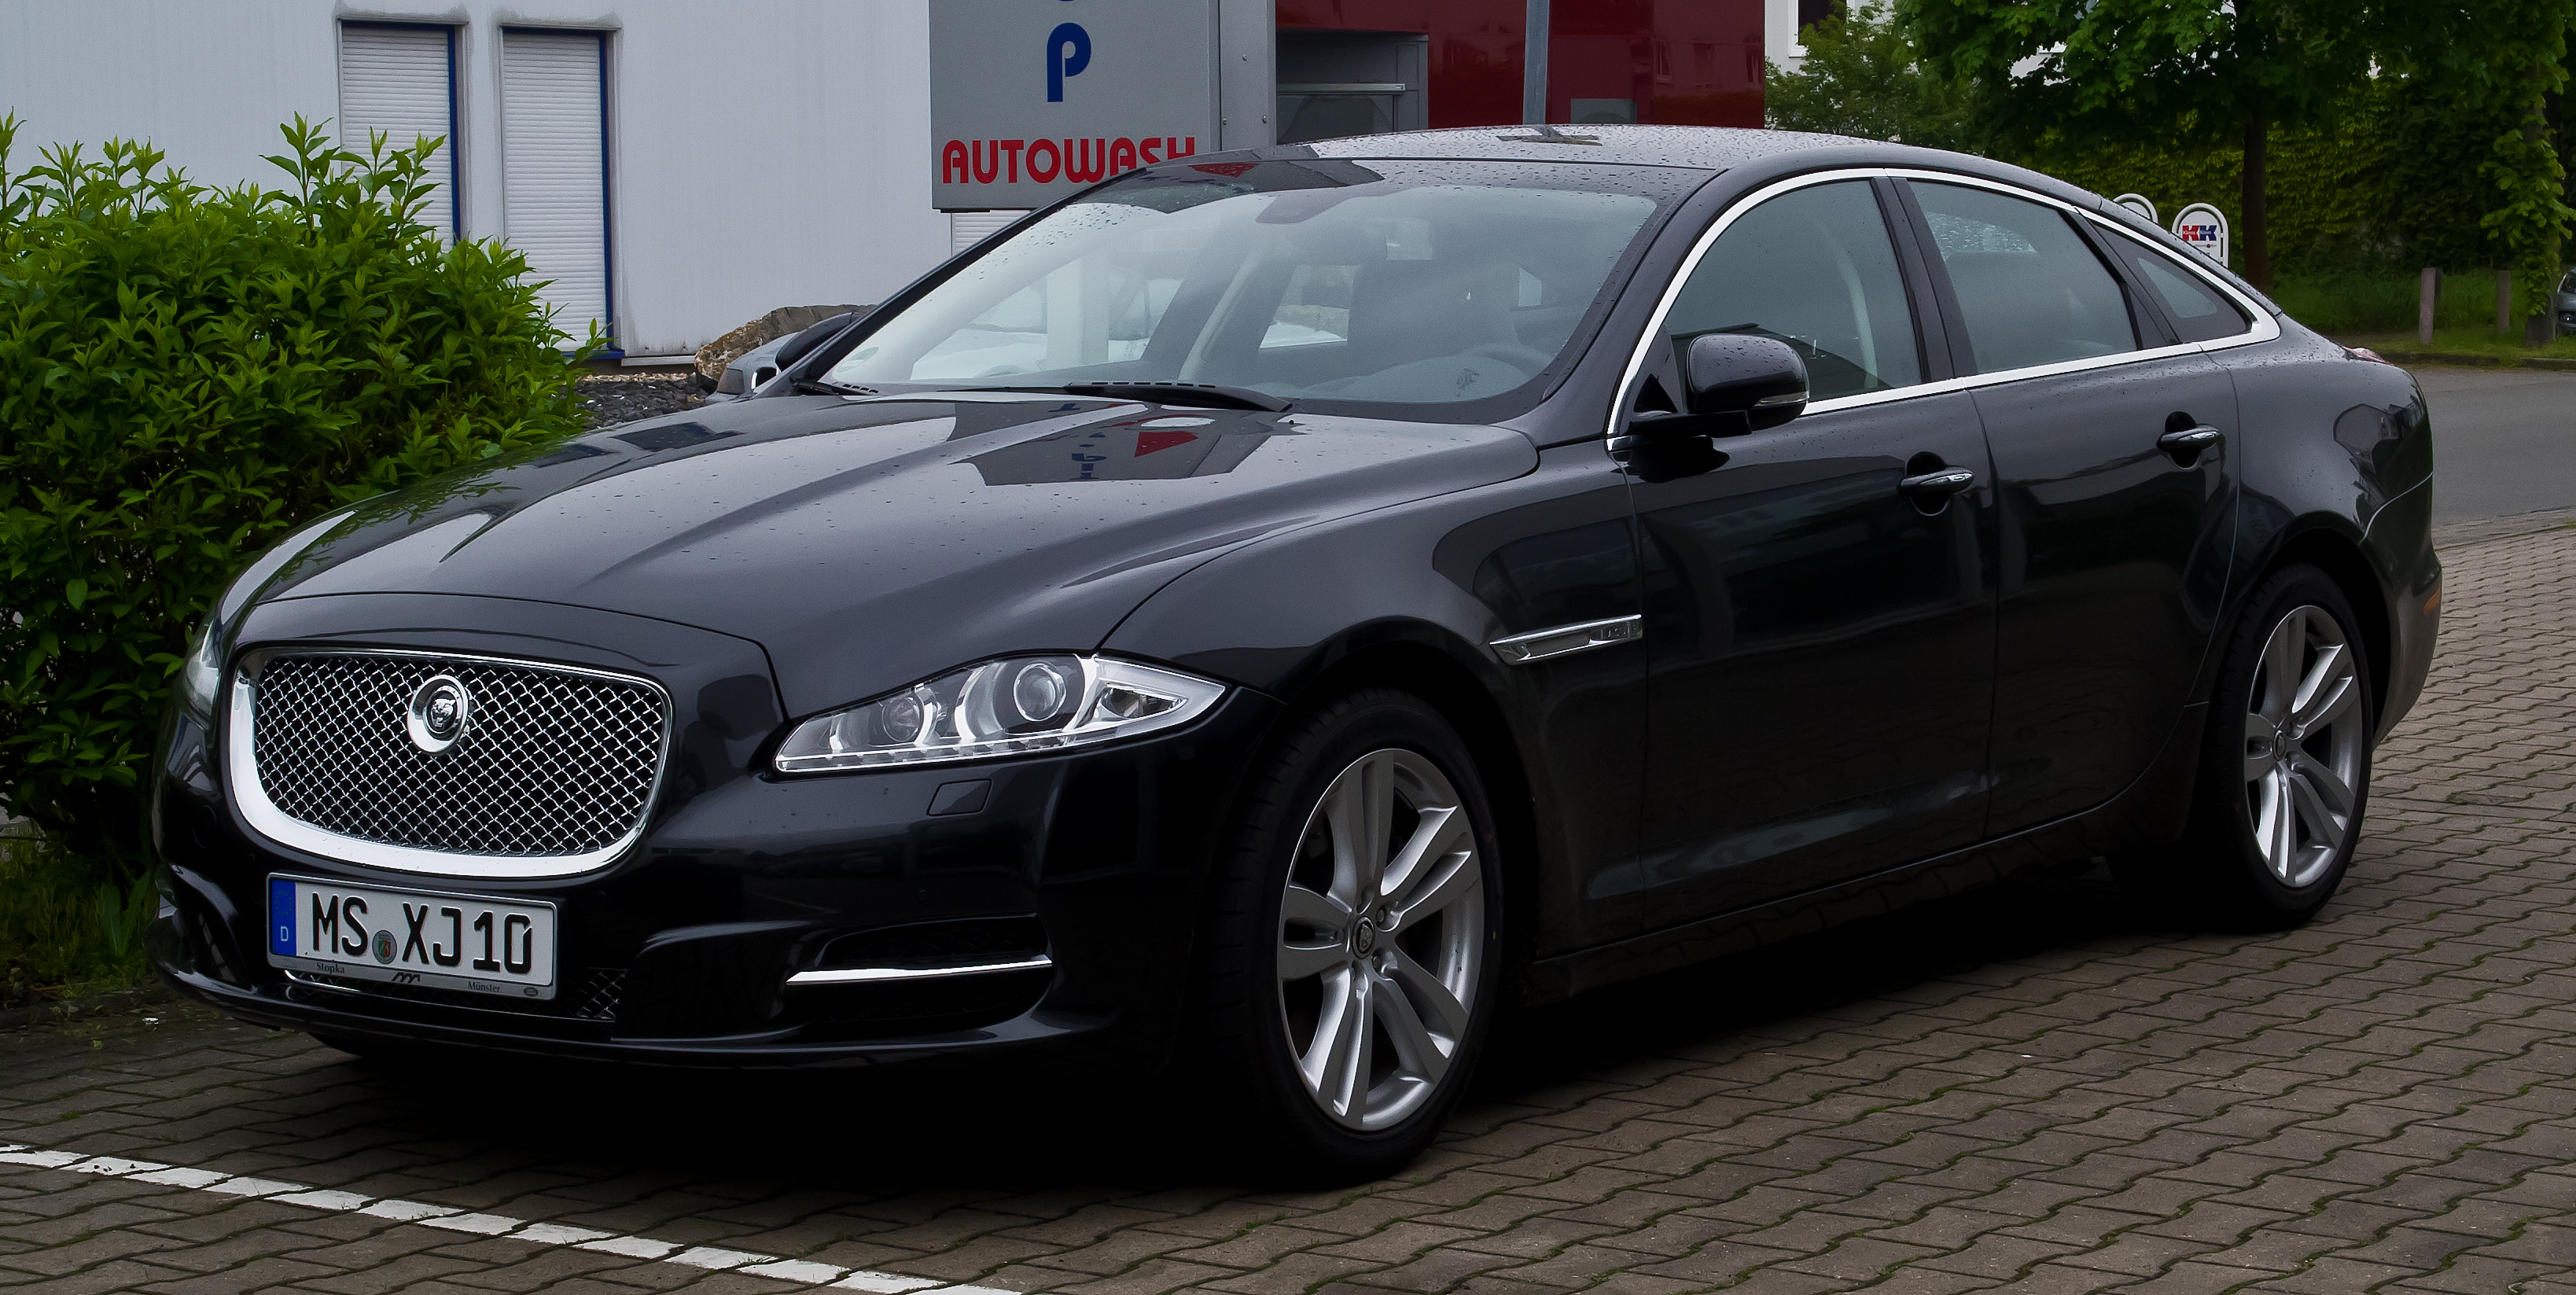 File:Jaguar XJ 3.0 Kompressor AWD Premium Luxury (X351